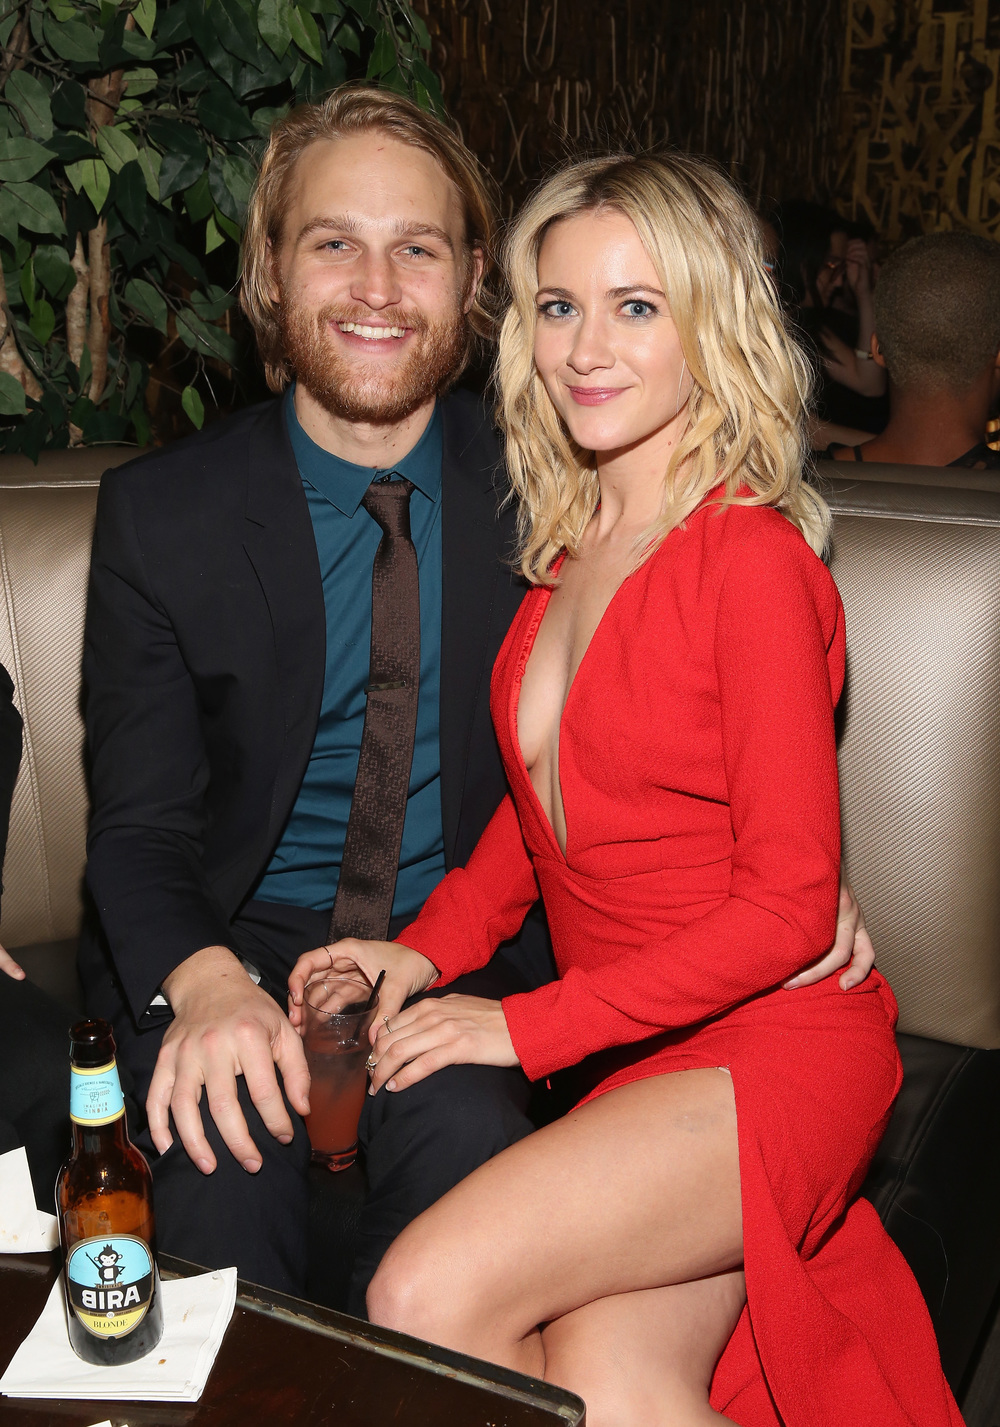 Wyatt Russel and Meredith Hagner                                                                                                                                               Photo: Robin Marchant